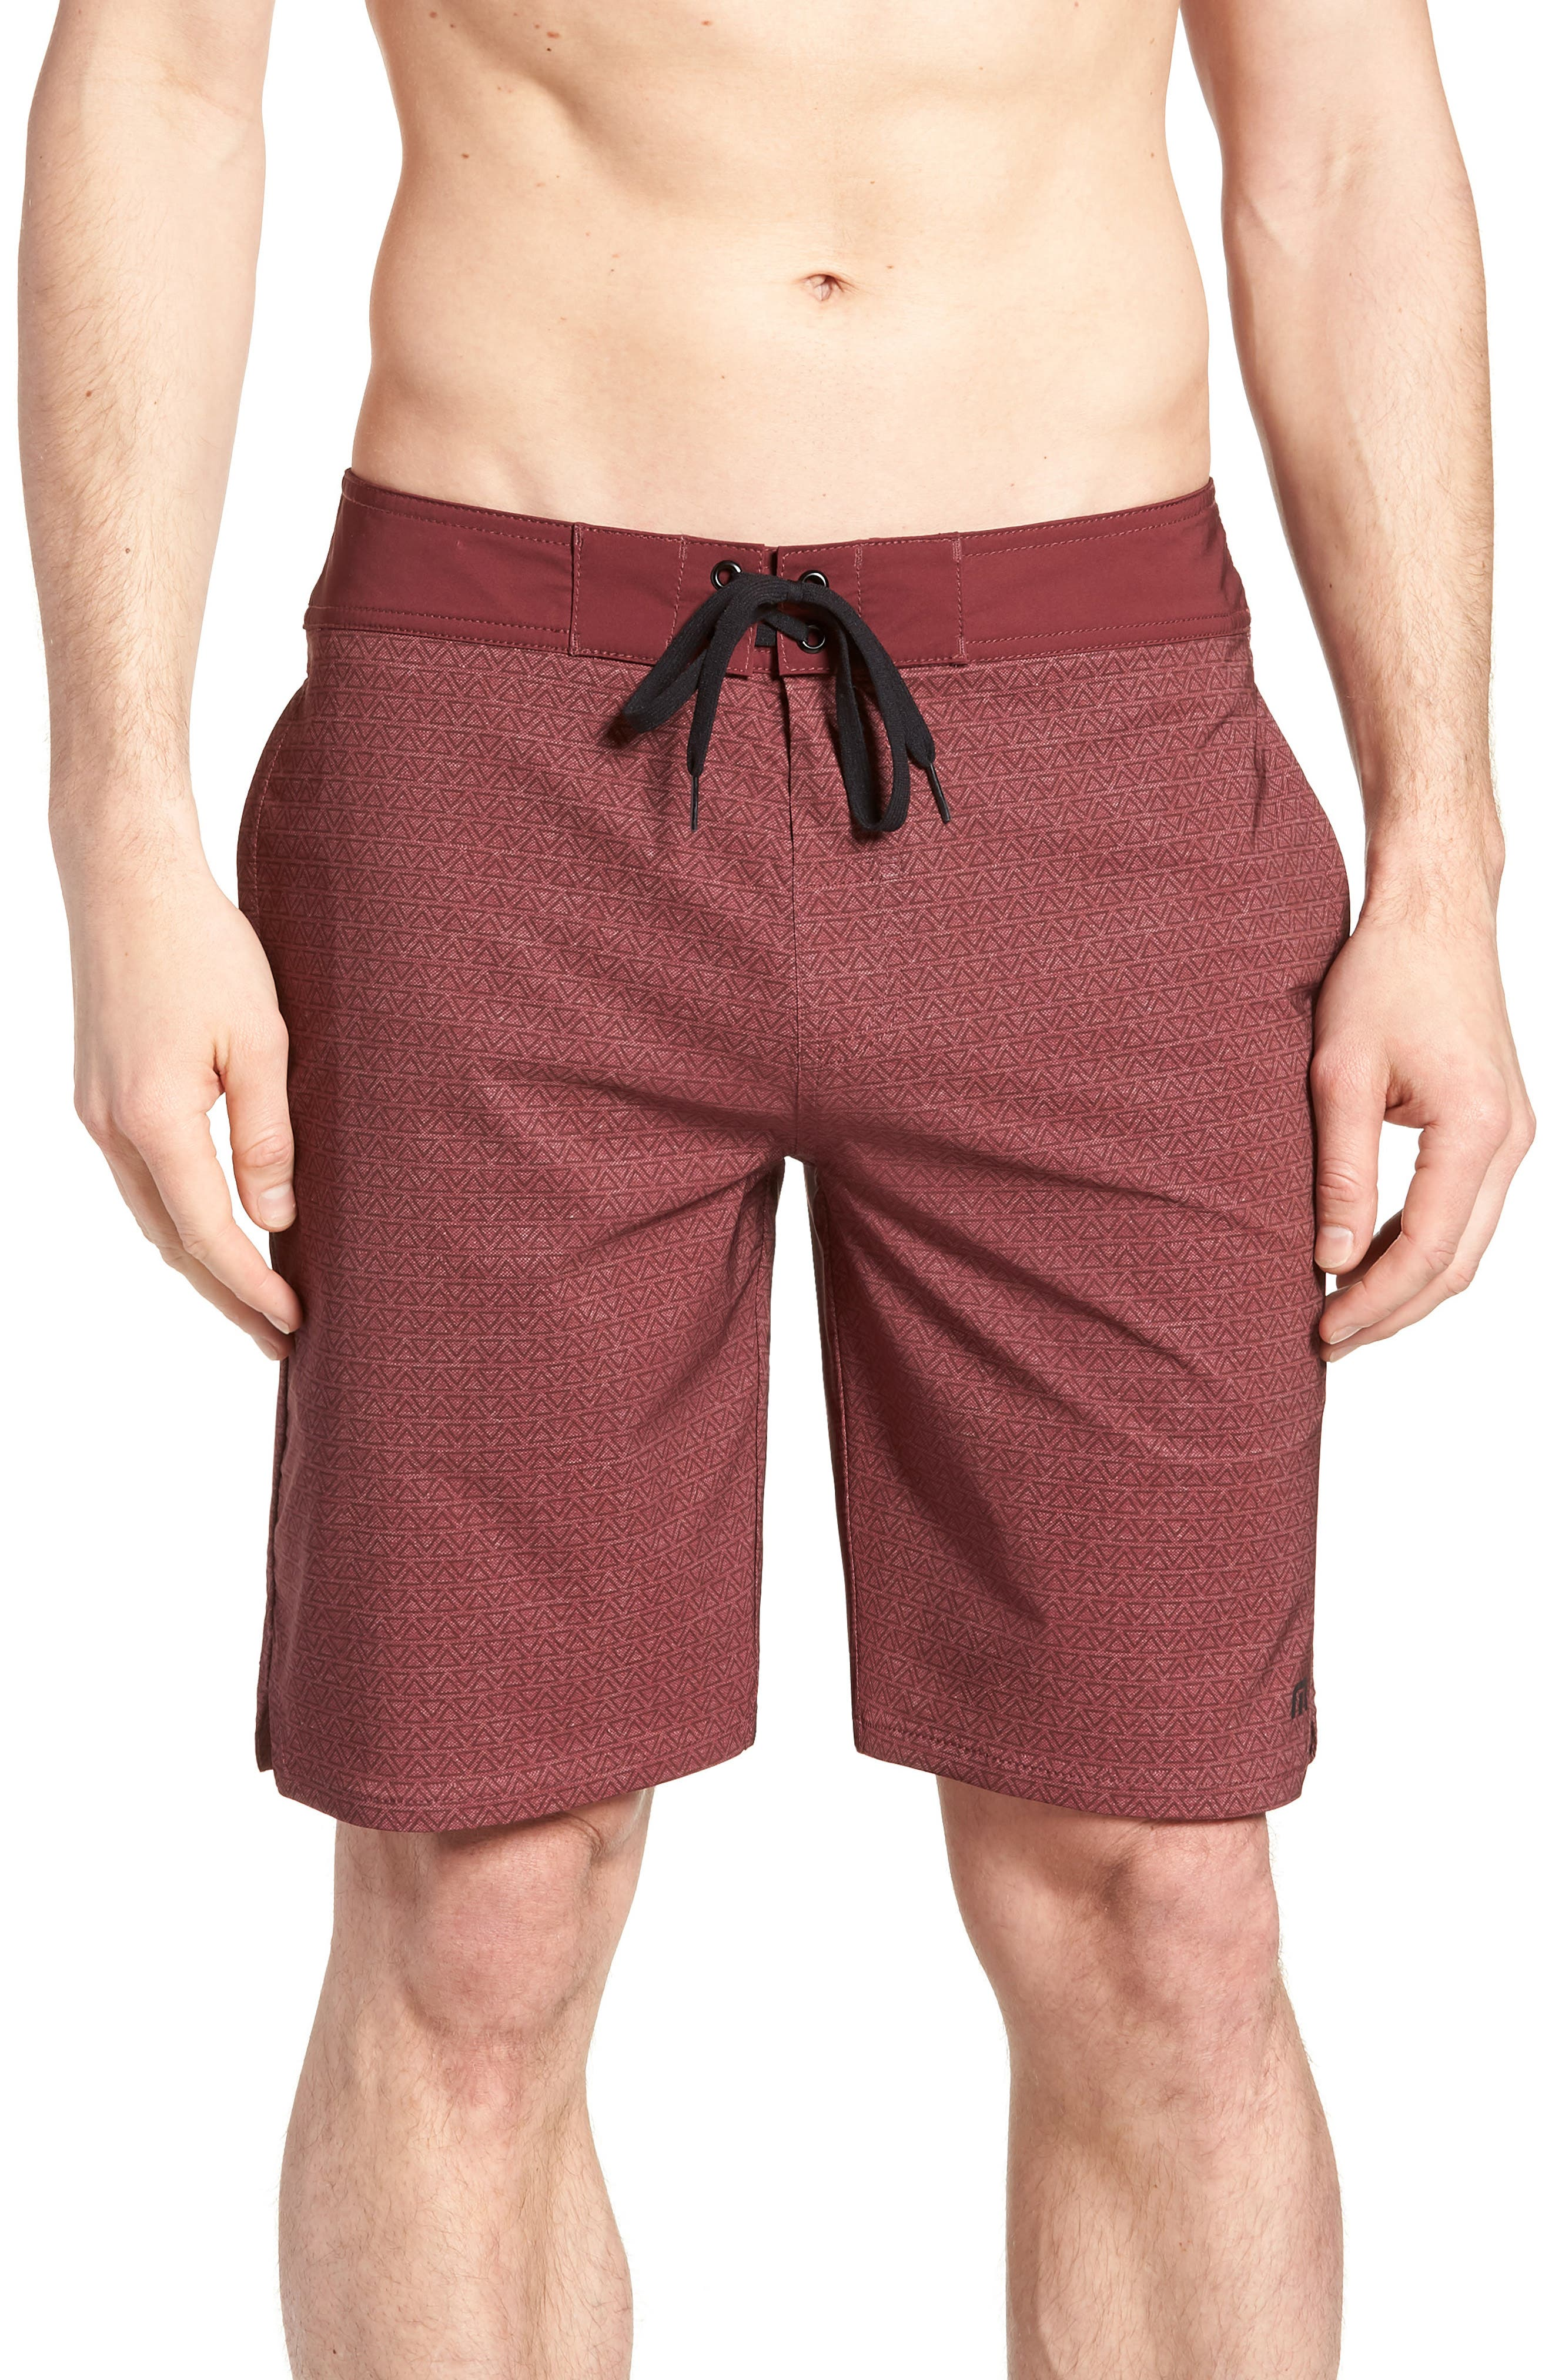 Blanders Regular Fit Board Shorts,                         Main,                         color, 930